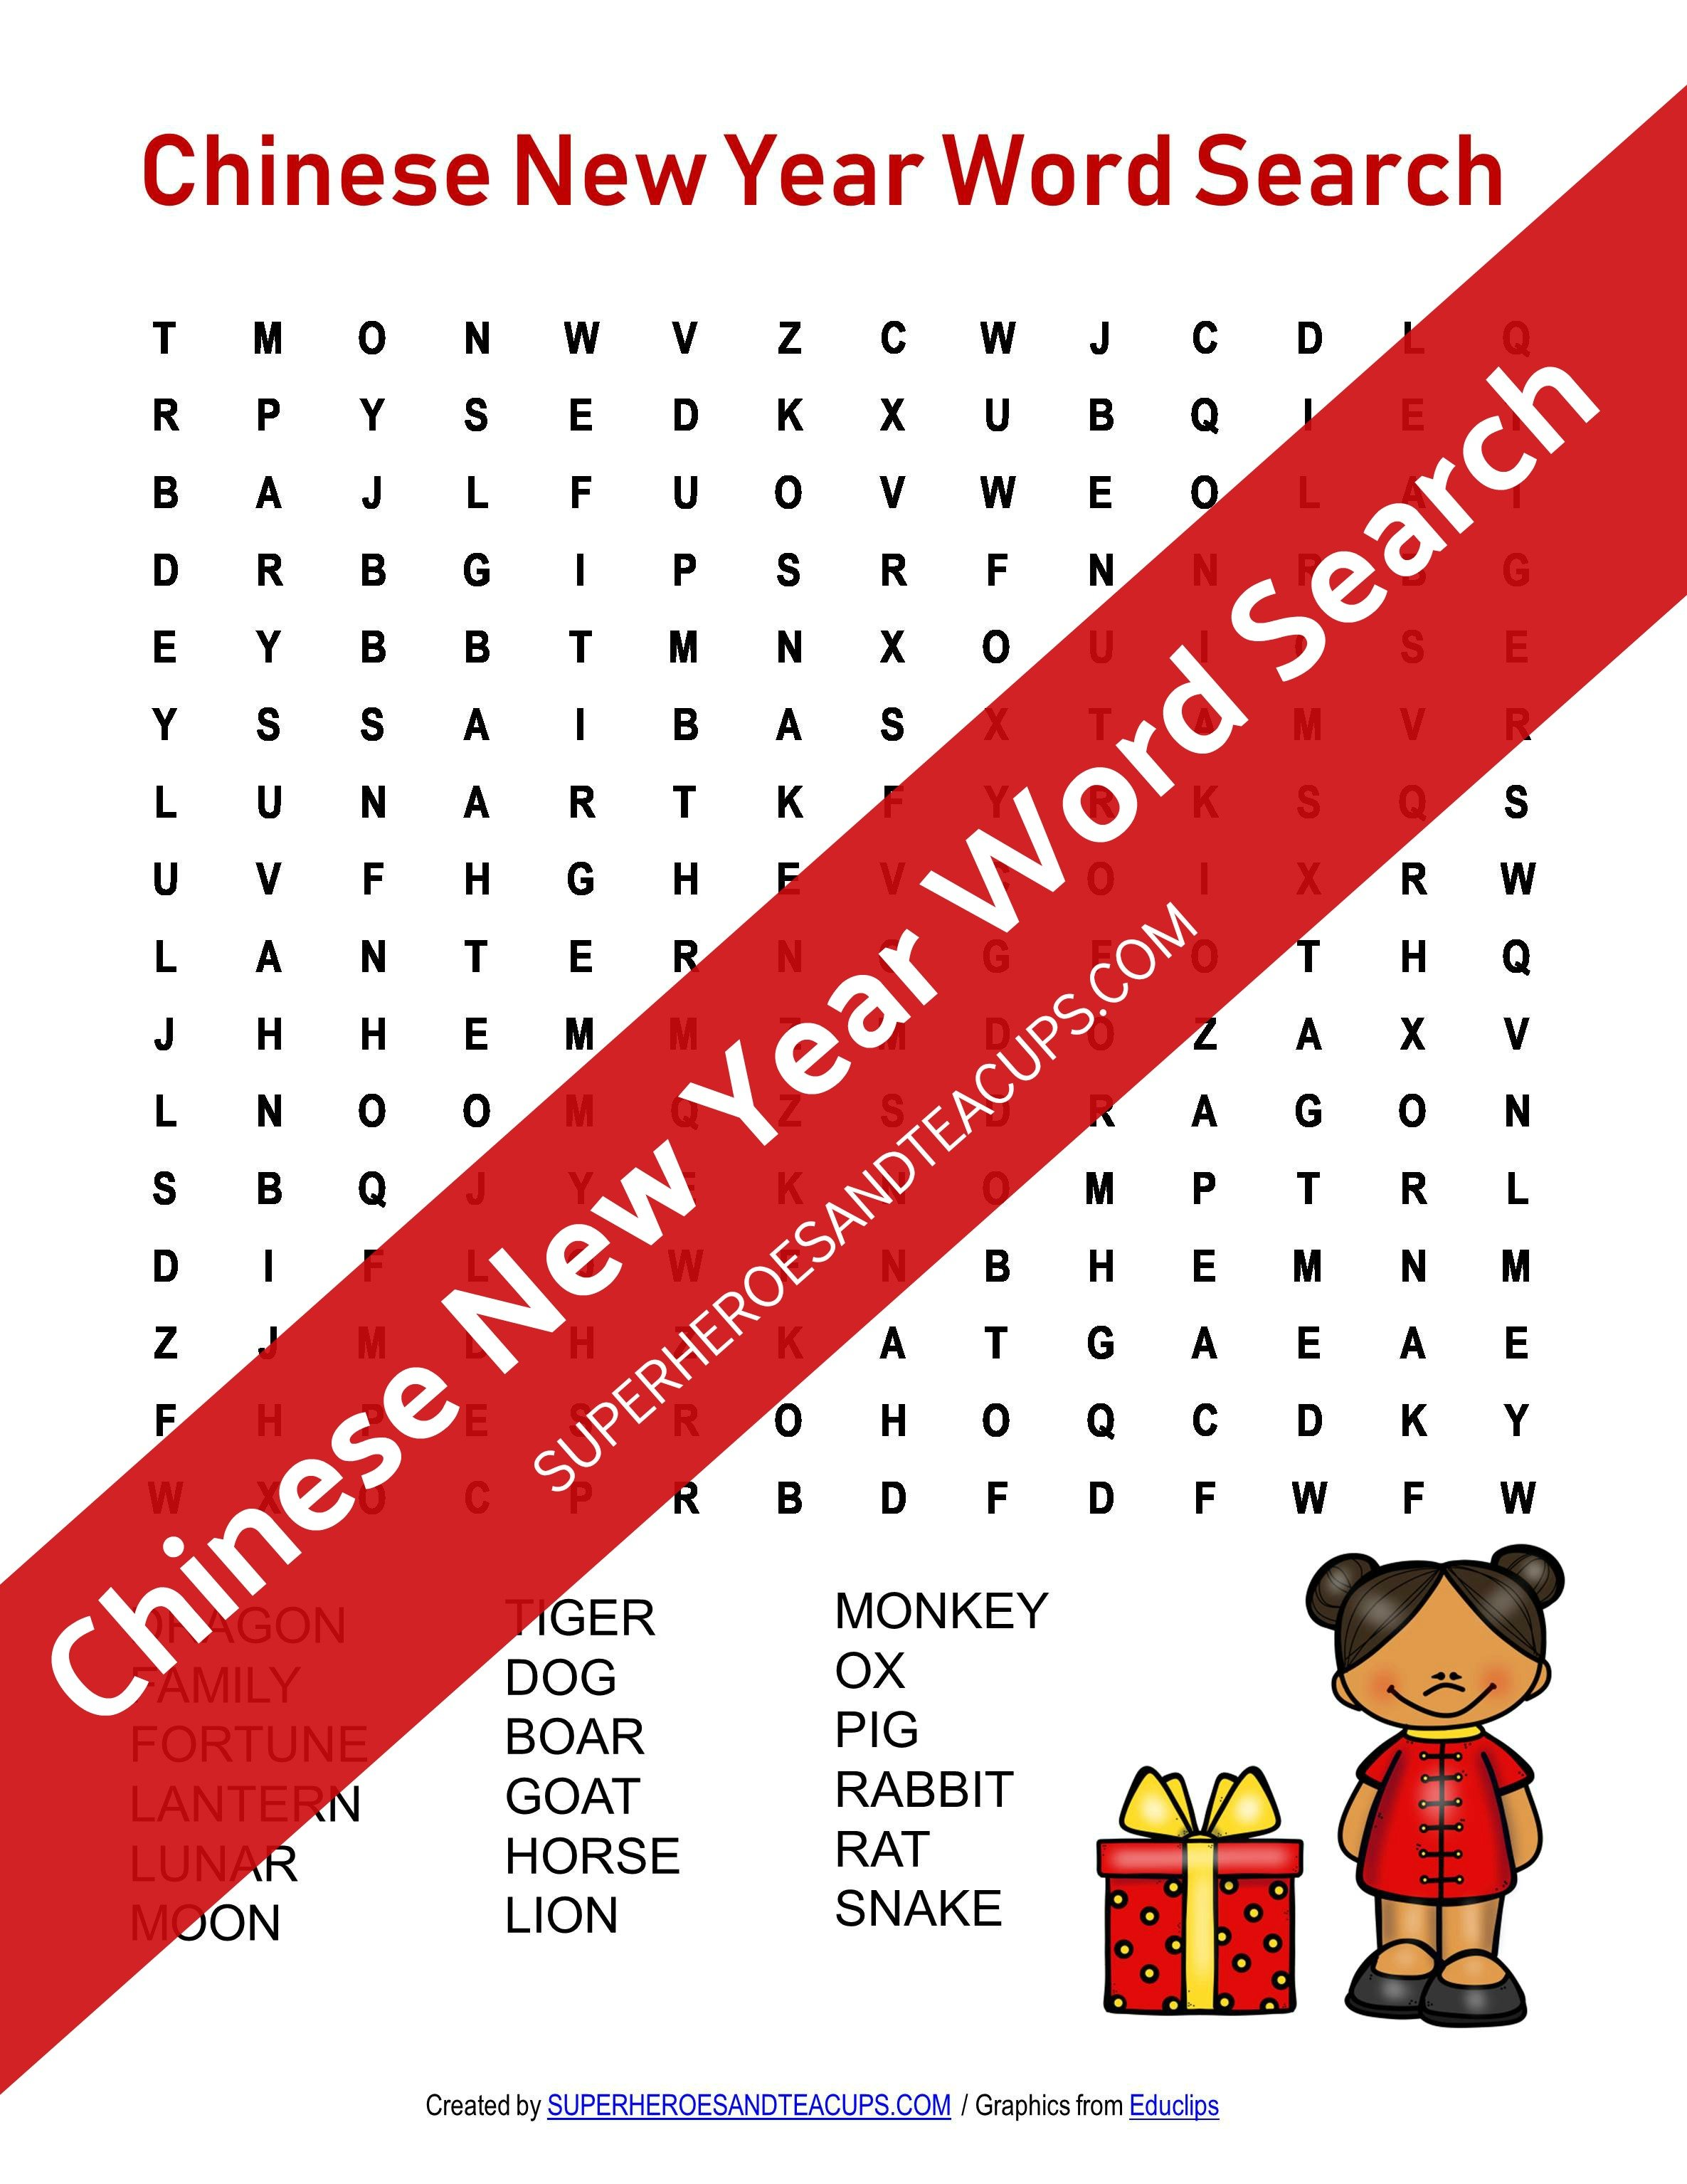 Chinese New Year Word Search Free Printable for Kids